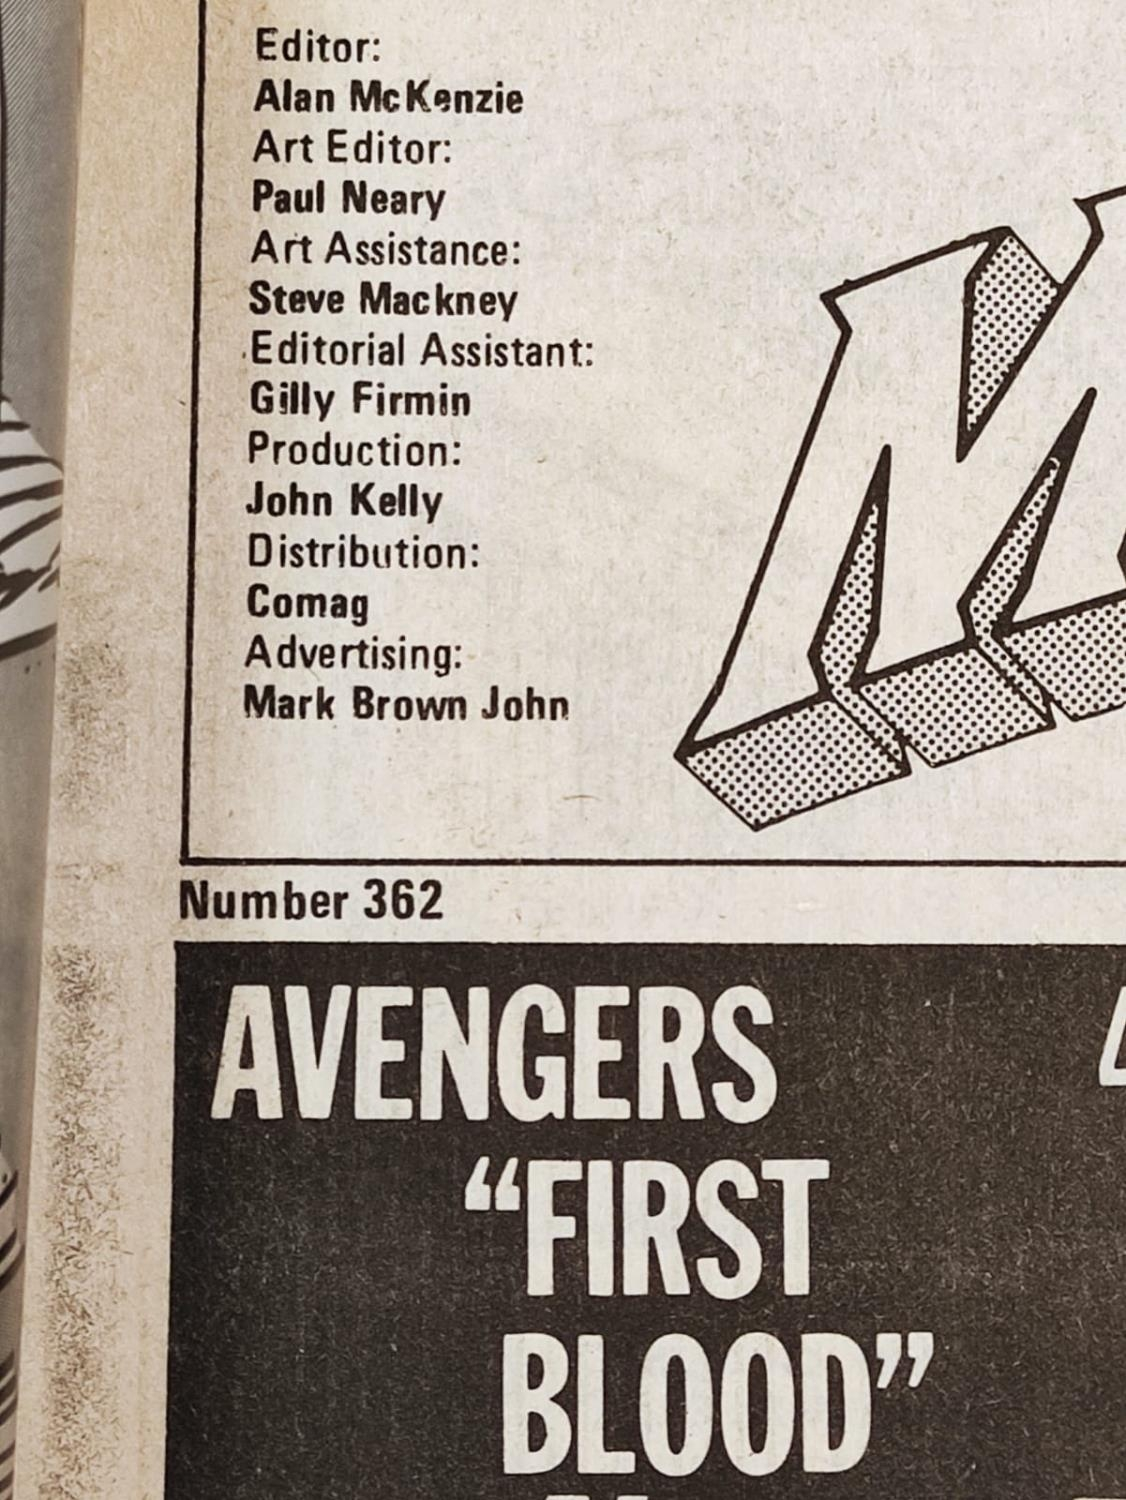 20 editions of mixed Vintage Marvel Comics. - Image 15 of 56